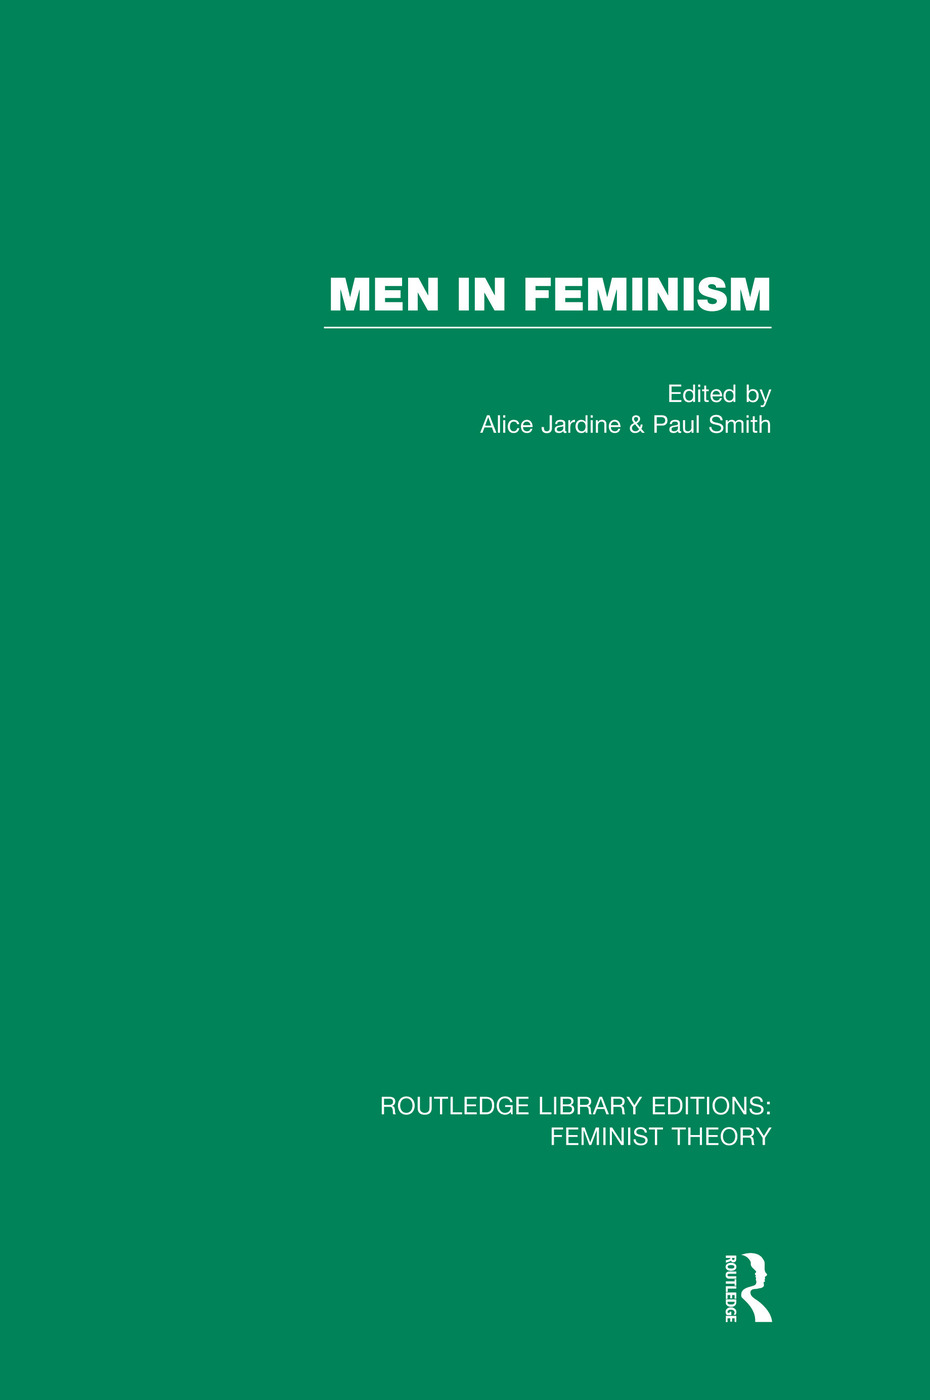 Men in Feminism (RLE Feminist Theory) book cover